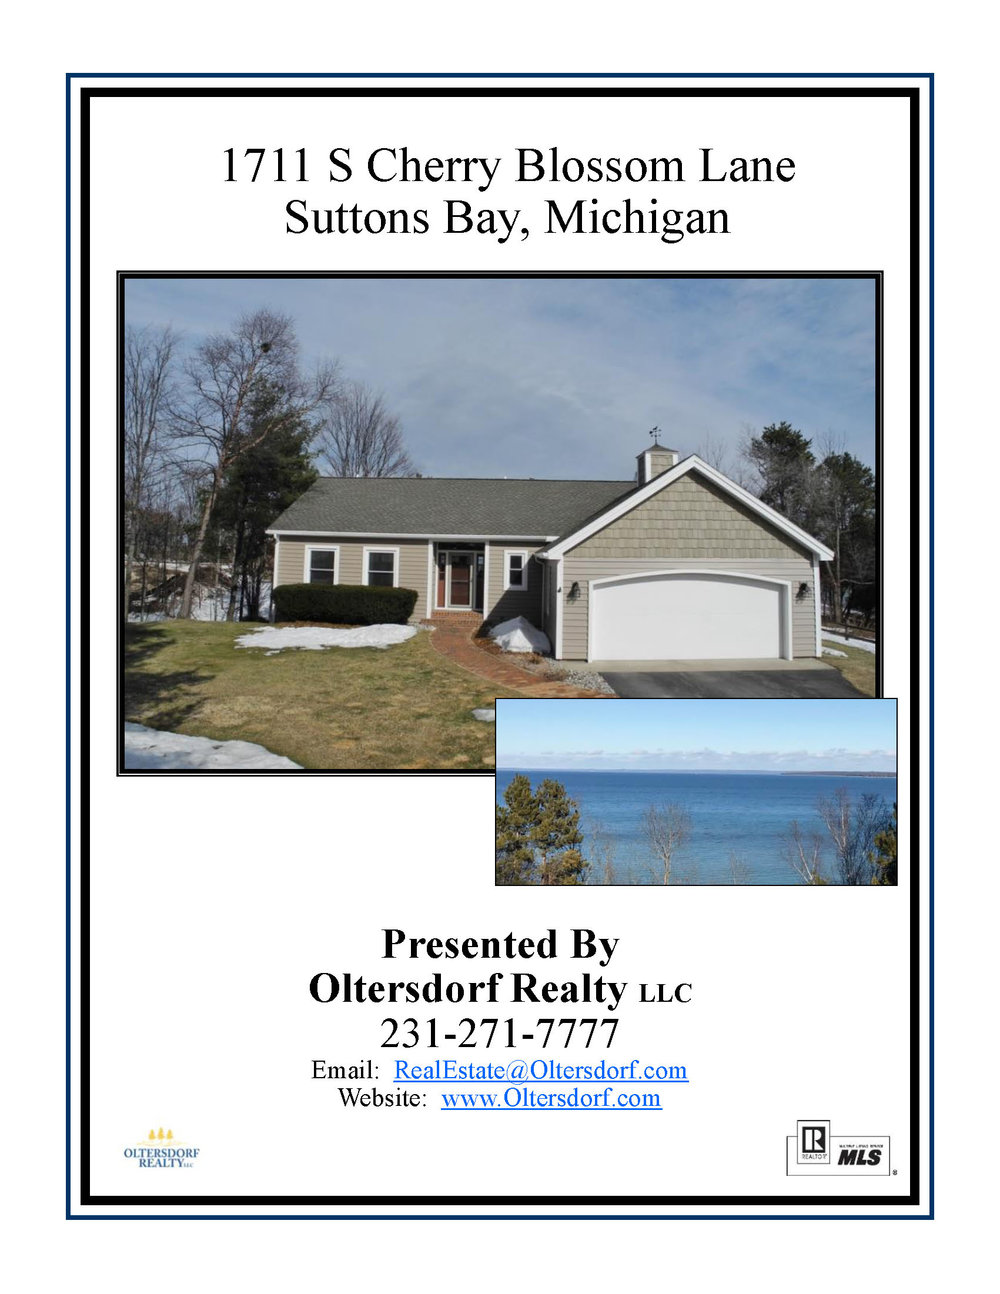 1771 S Cherry Blossom Lane, Suttons Bay Marketing Packet - Real Estate for sale by oltersdorf realty llc_Page_01.jpg